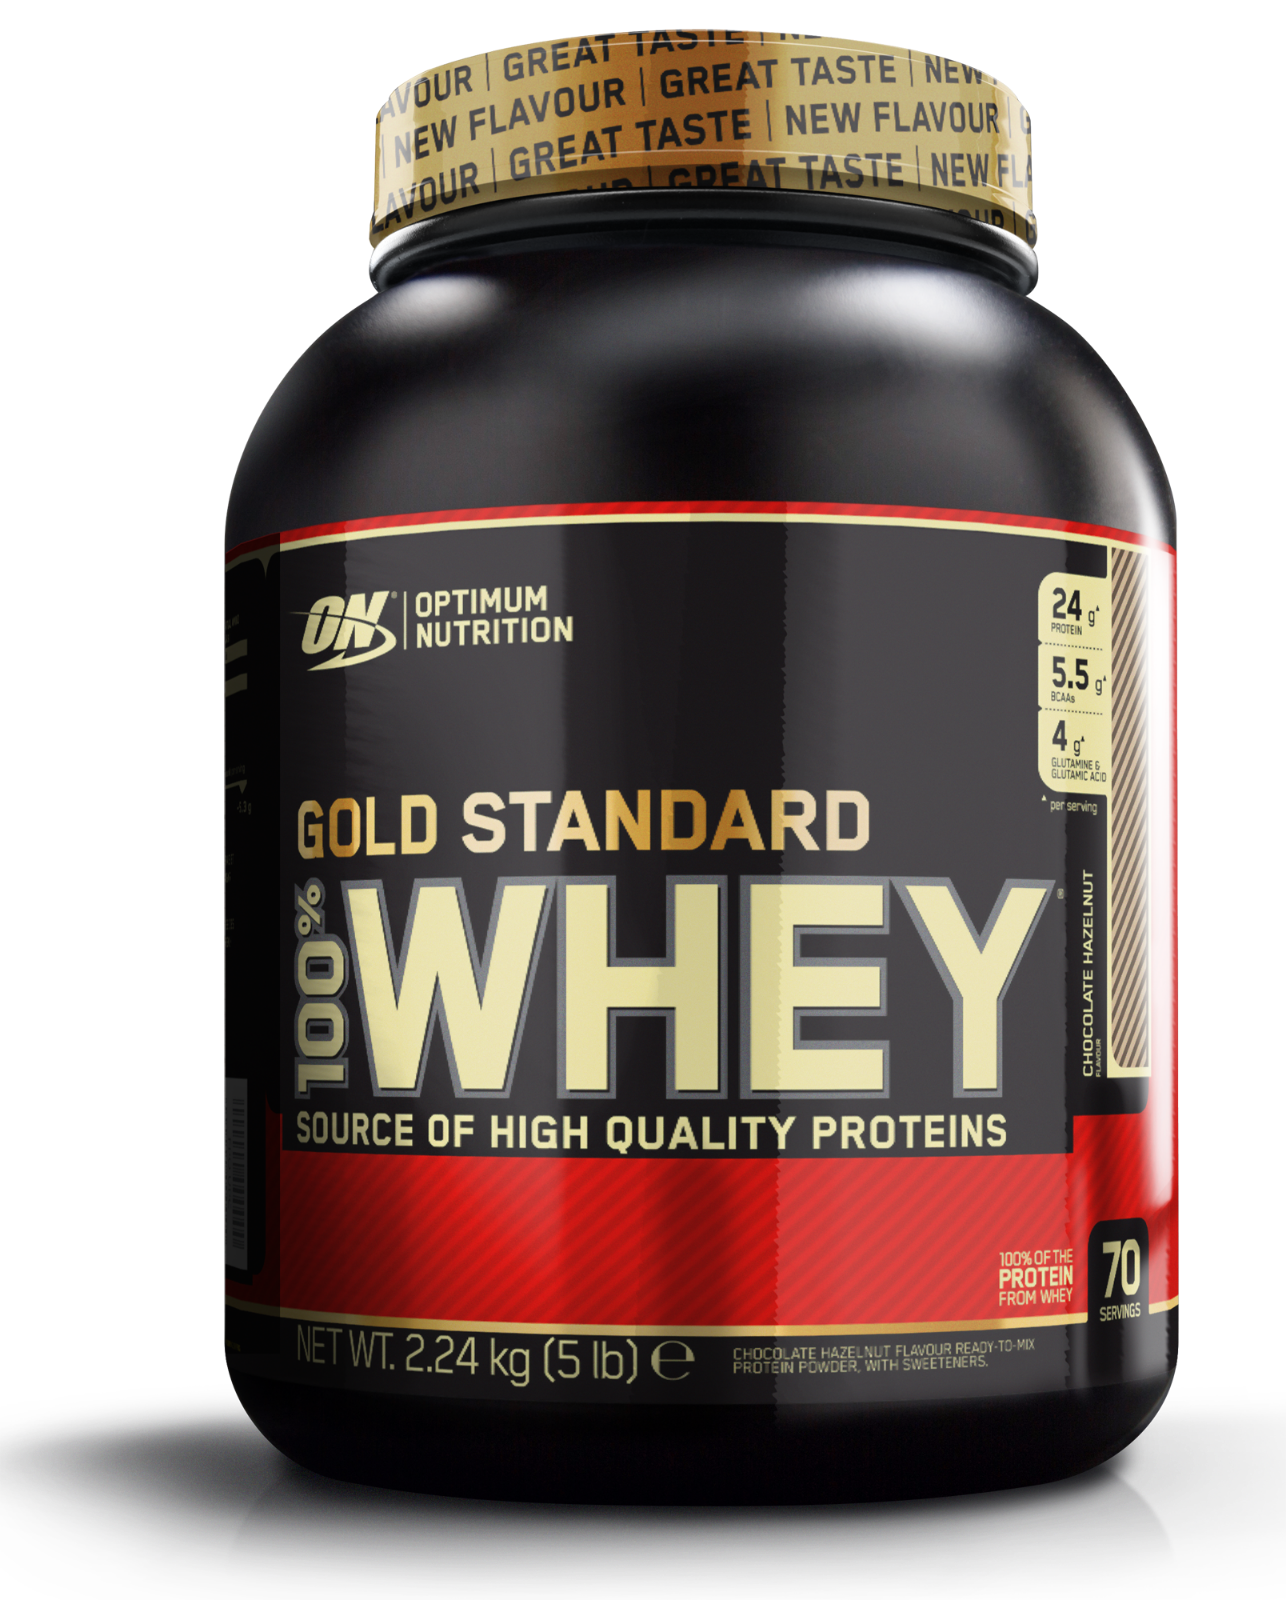 Optimum Nutrition Gold Standard 100 Whey Whey 100 Protein ON 2lb 5lb 10lb All Flavours 2541c9